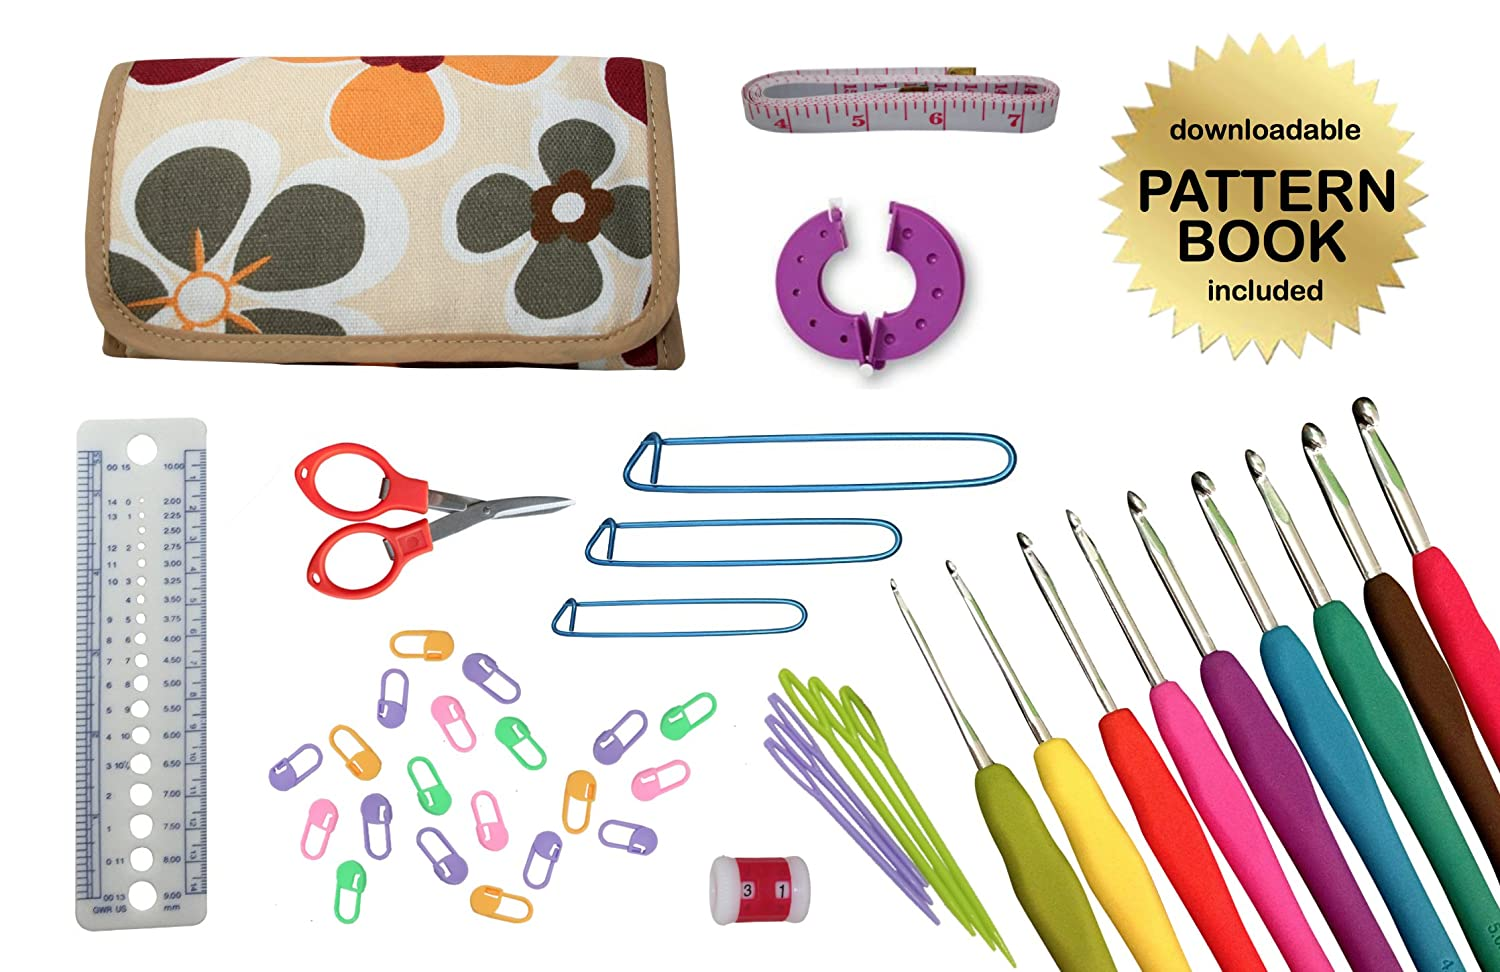 National Crochet Month SALE - Gold Medal Crafts' 44pc Ultimate Crochet Kit – Includes 9 Ergonomic Hooks and All Accessories Needed in Convenient Canvas Carrying Case [Floral Pattern - Ergonomic Hooks]